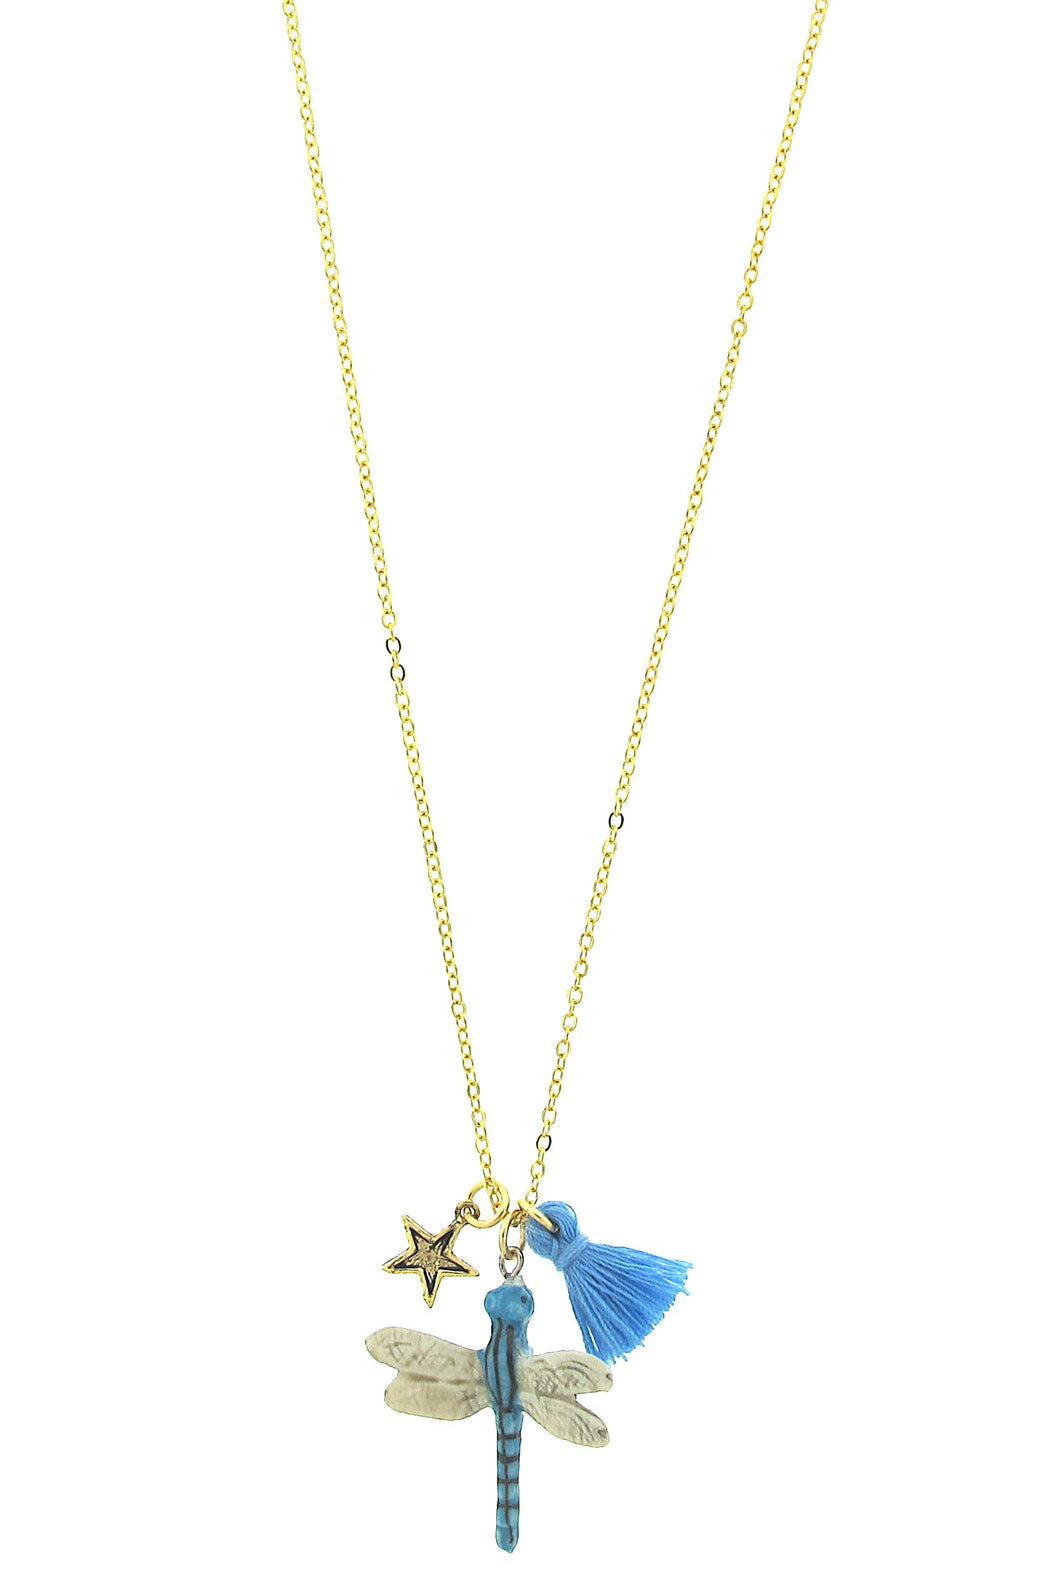 Dragonfly Lil' Critters Necklace